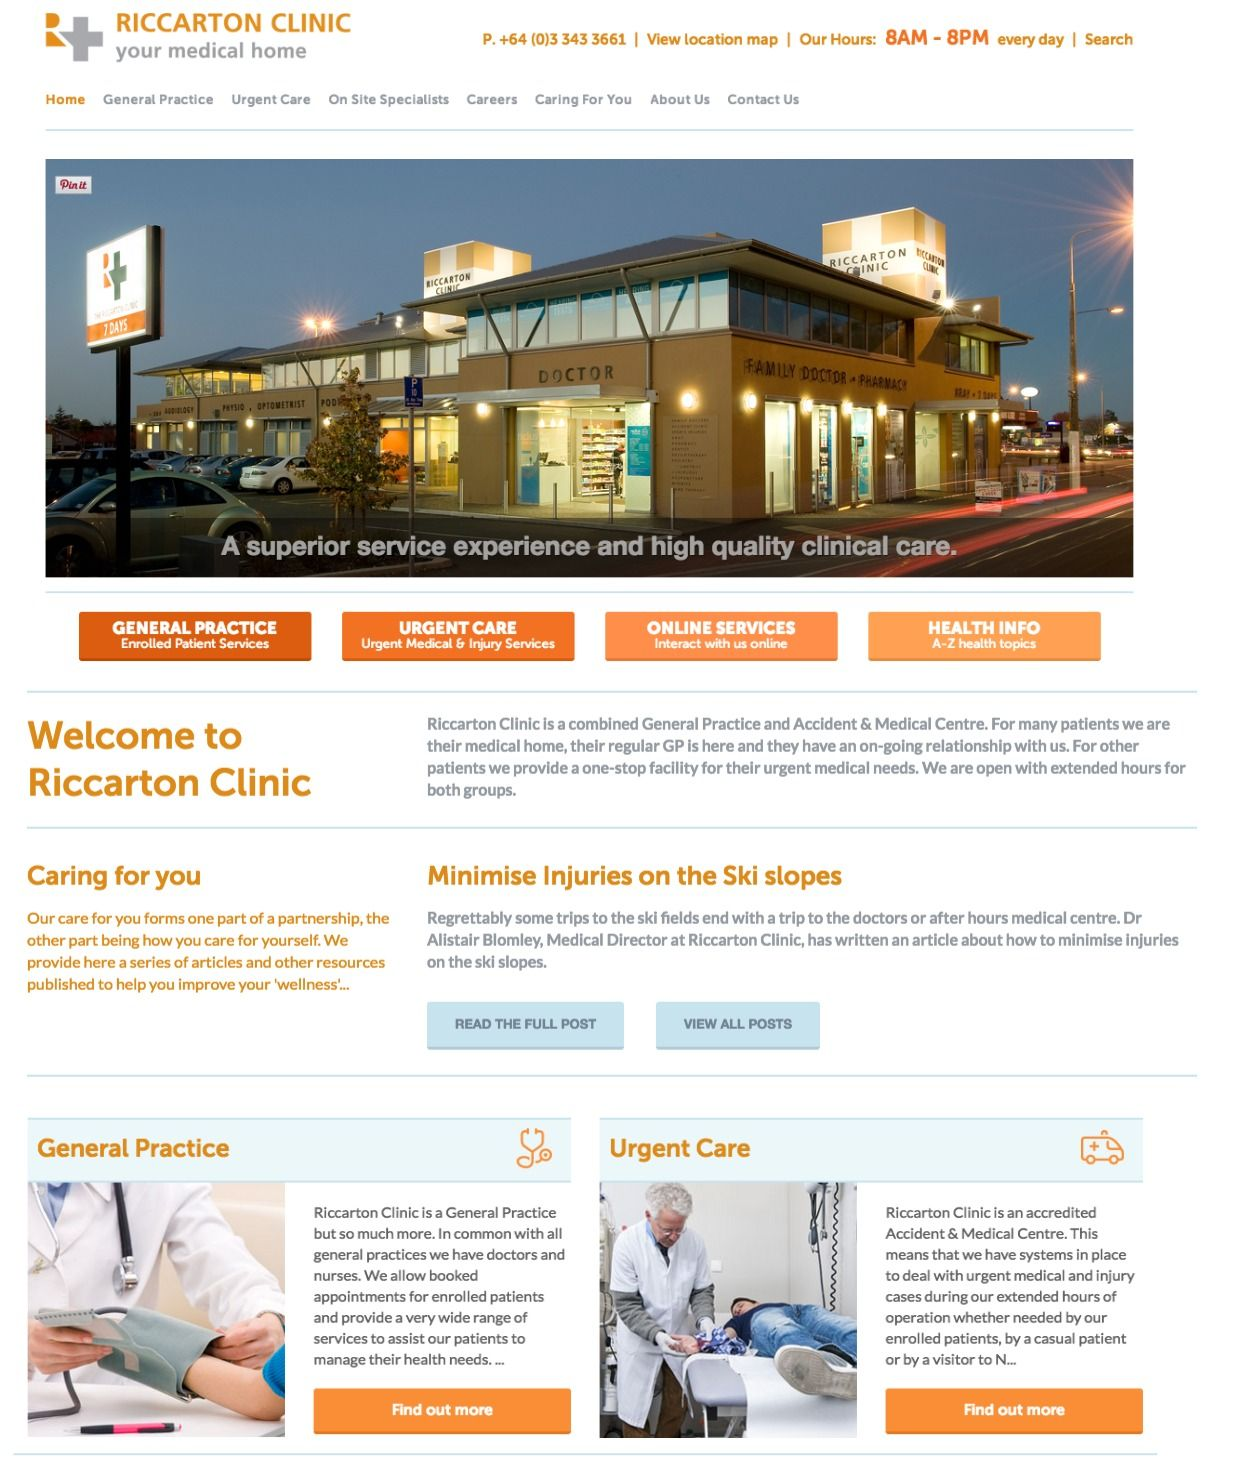 Website design for Riccarton Clinic, a combined General